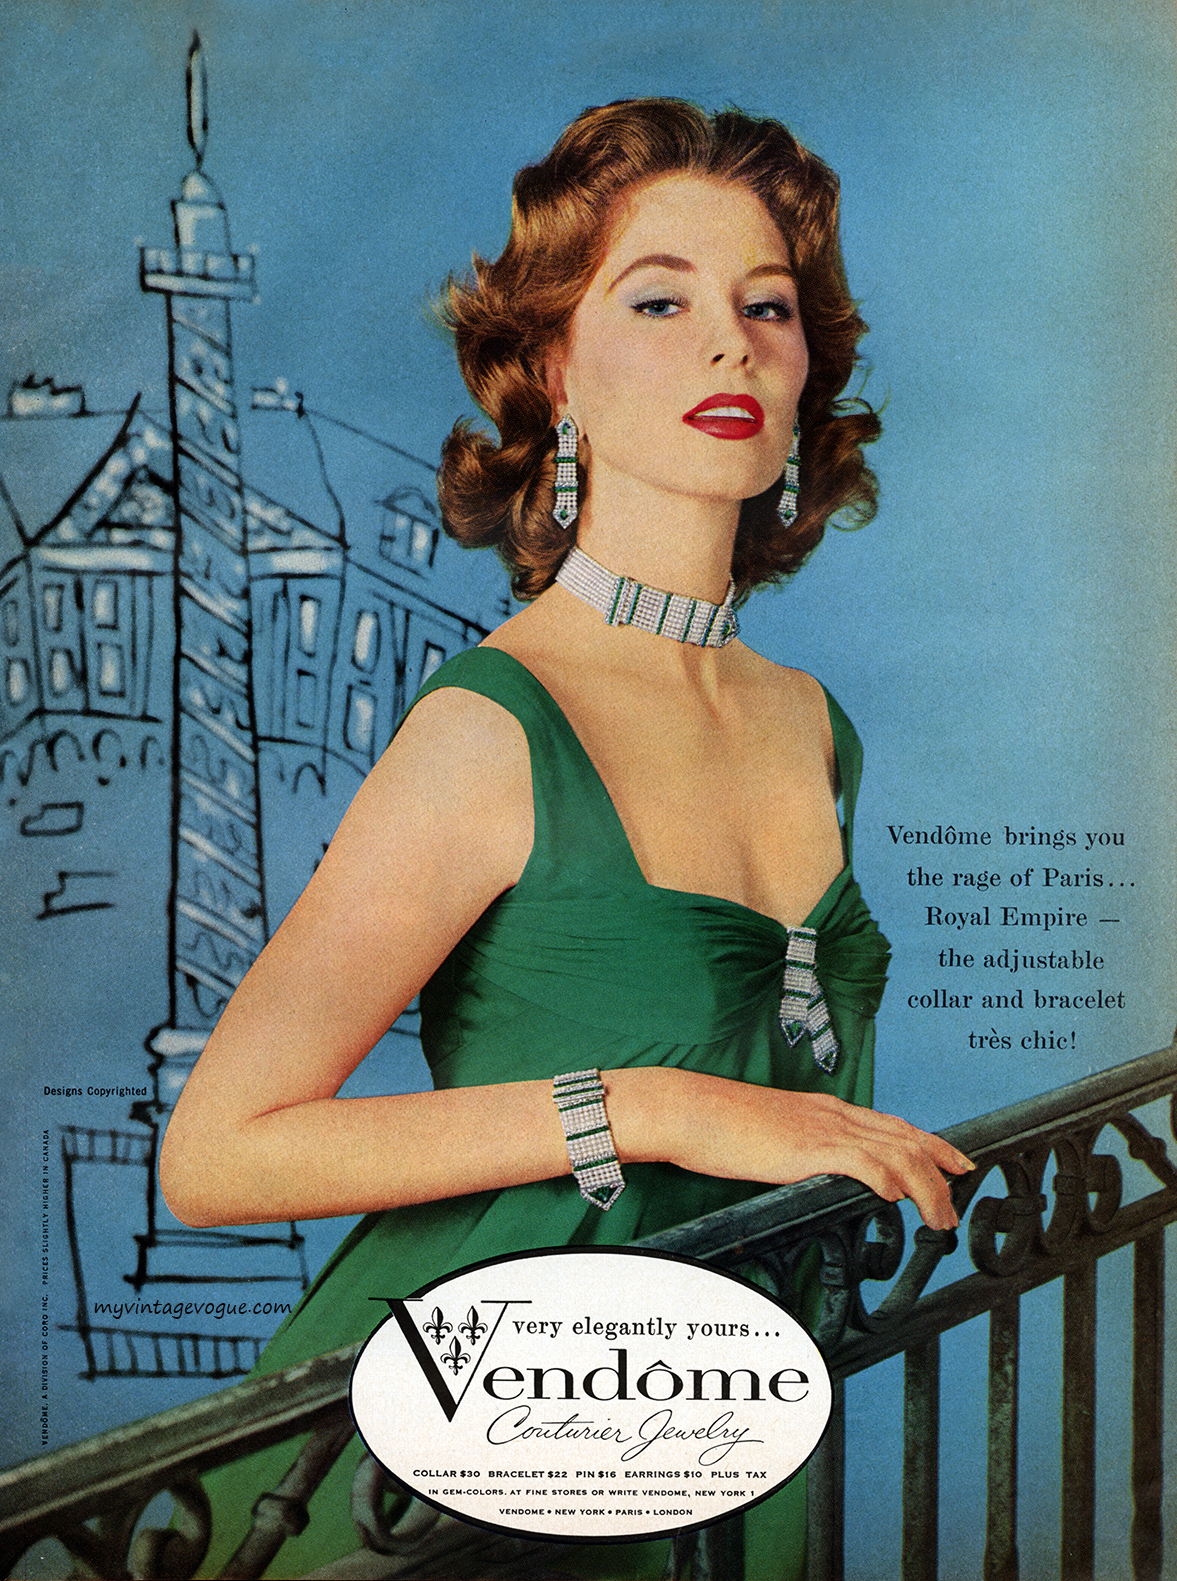 Suzy Parker in an advert, 1958. Image via myvintagevogue.